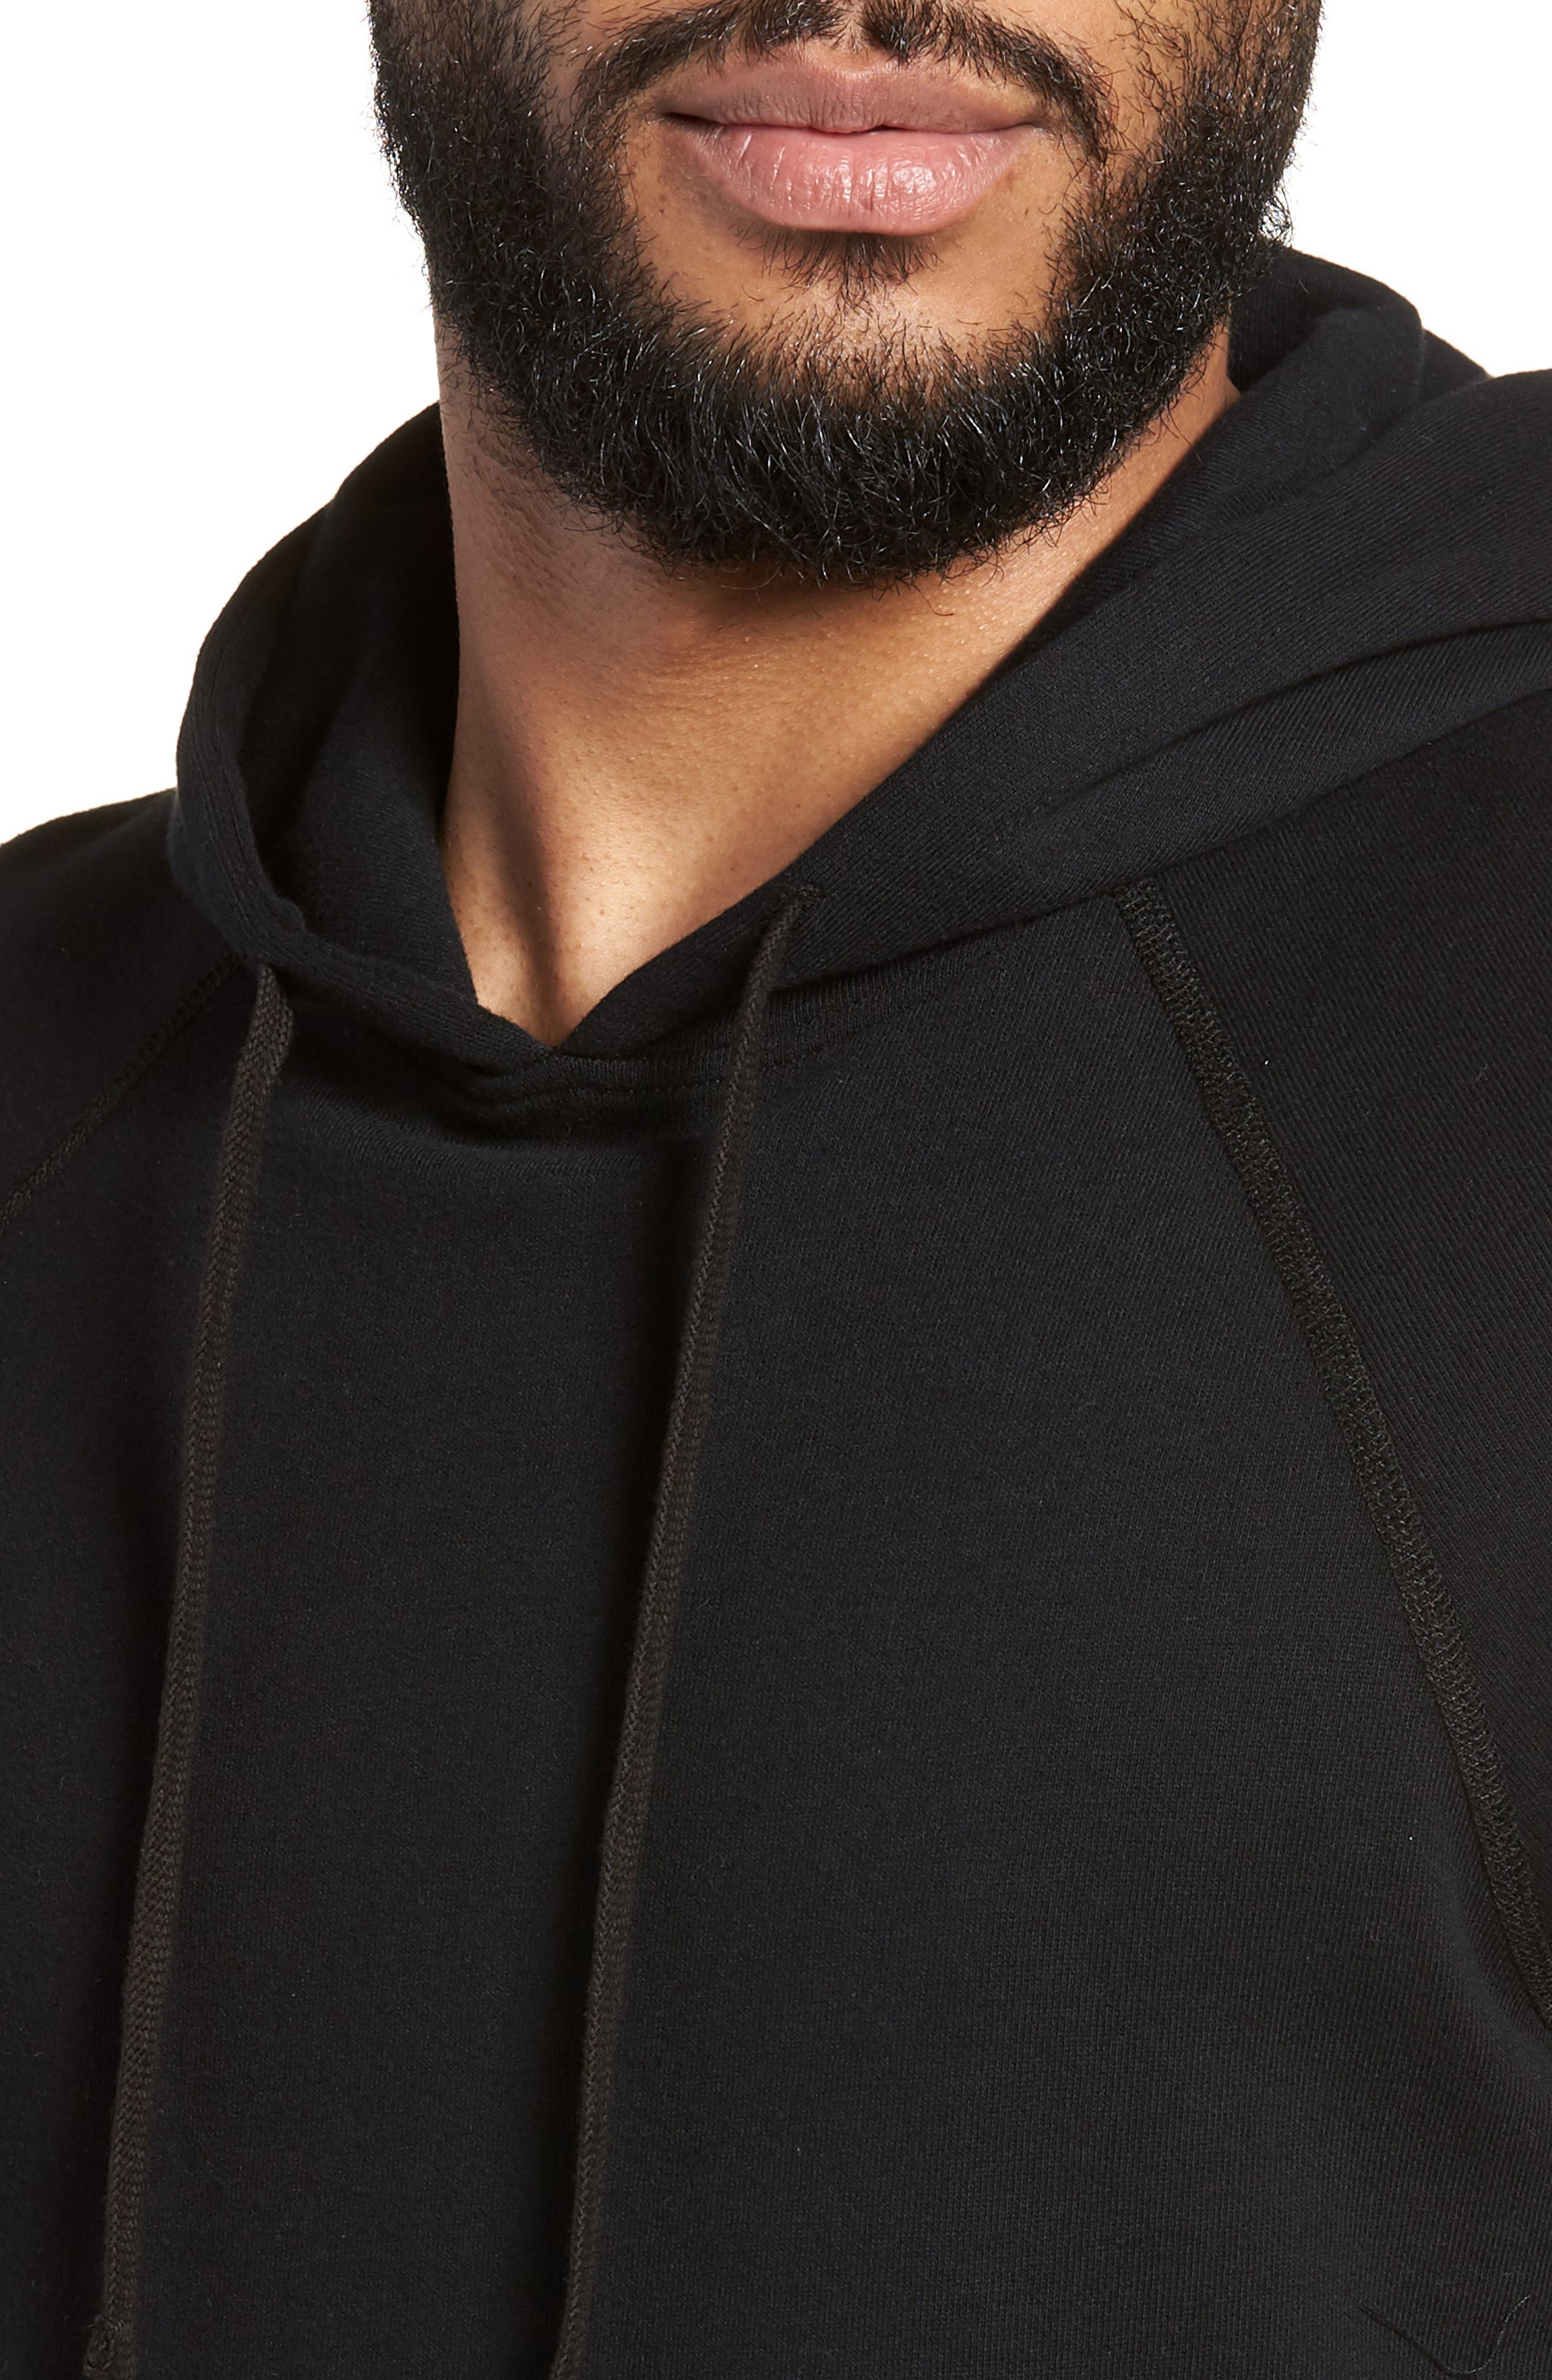 Cutoff Hoodie,                             Alternate thumbnail 4, color,                             Black